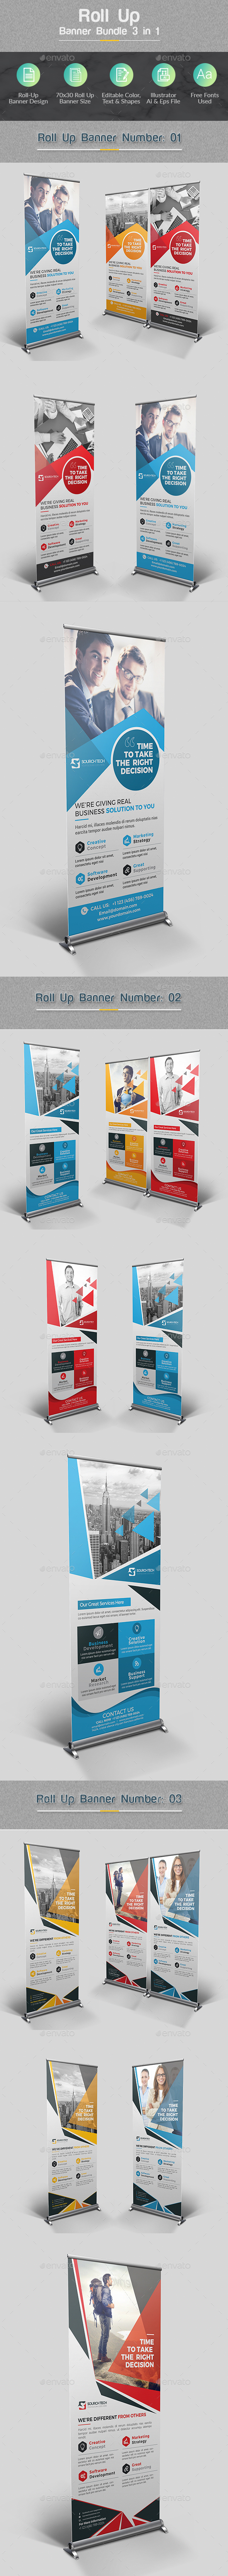 Roll Up Banner Bundle 3 in 1 - Signage Print Templates